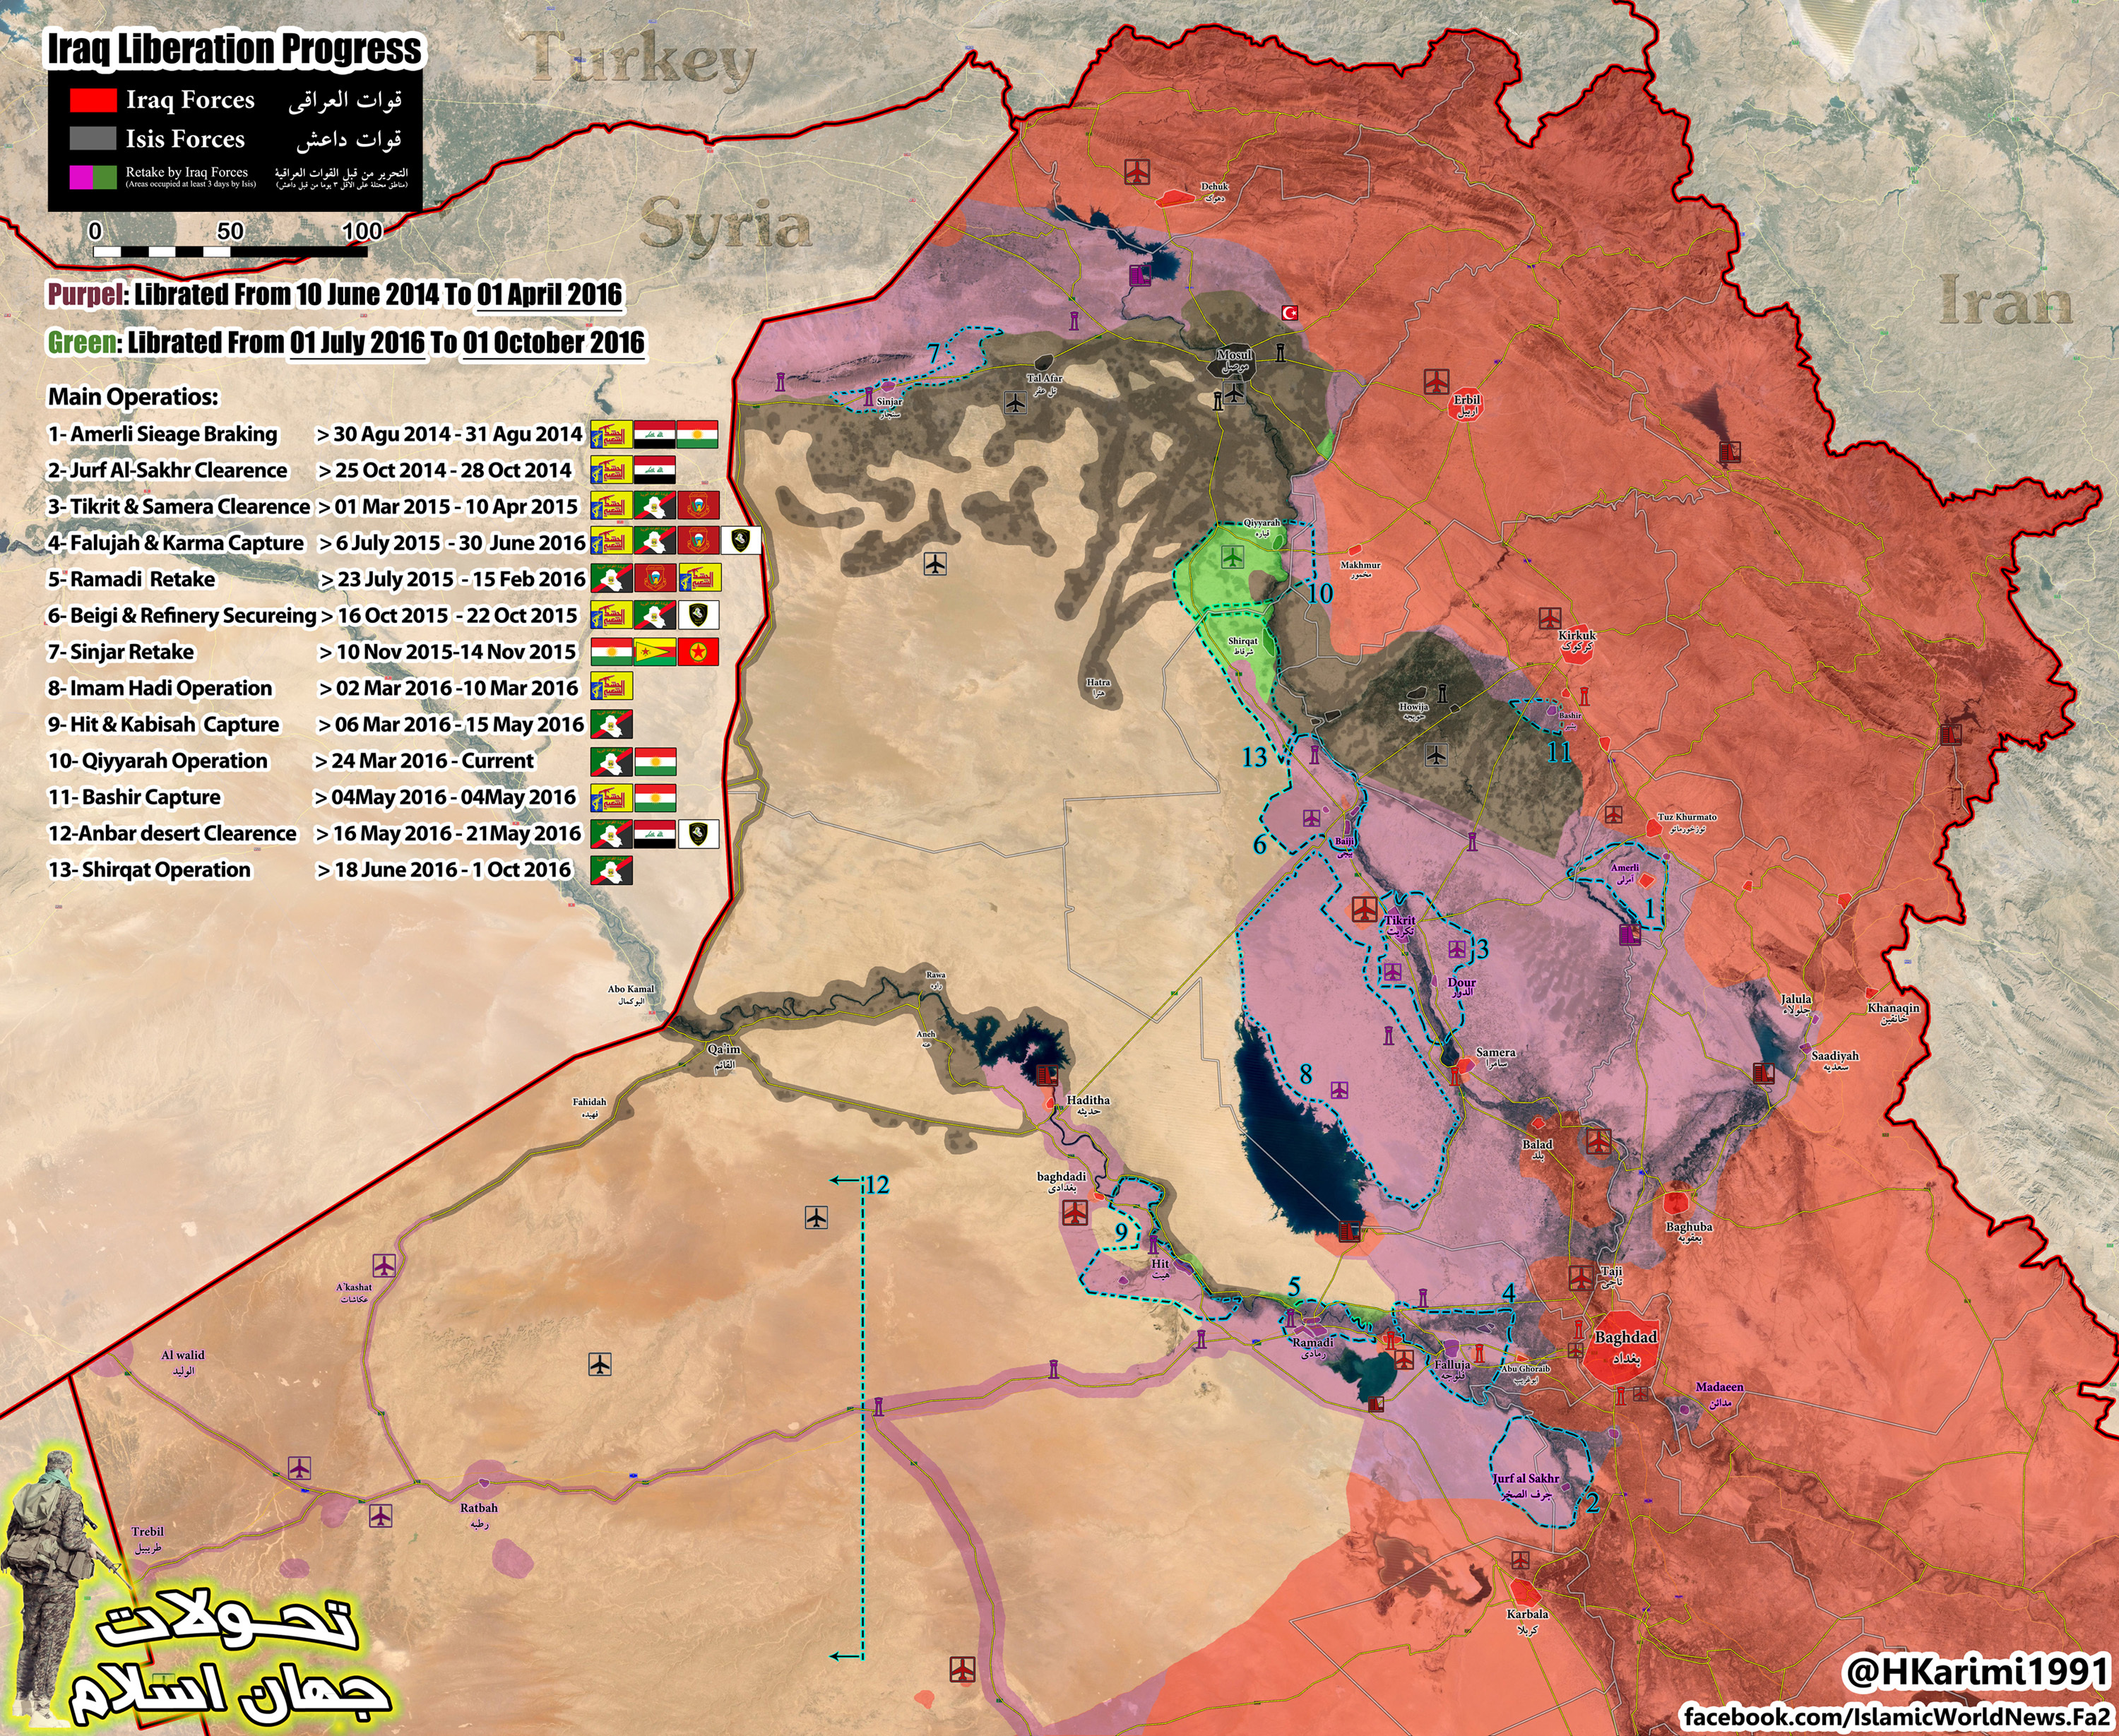 Map Update: Military Situation in Iraq in July-October, 2016